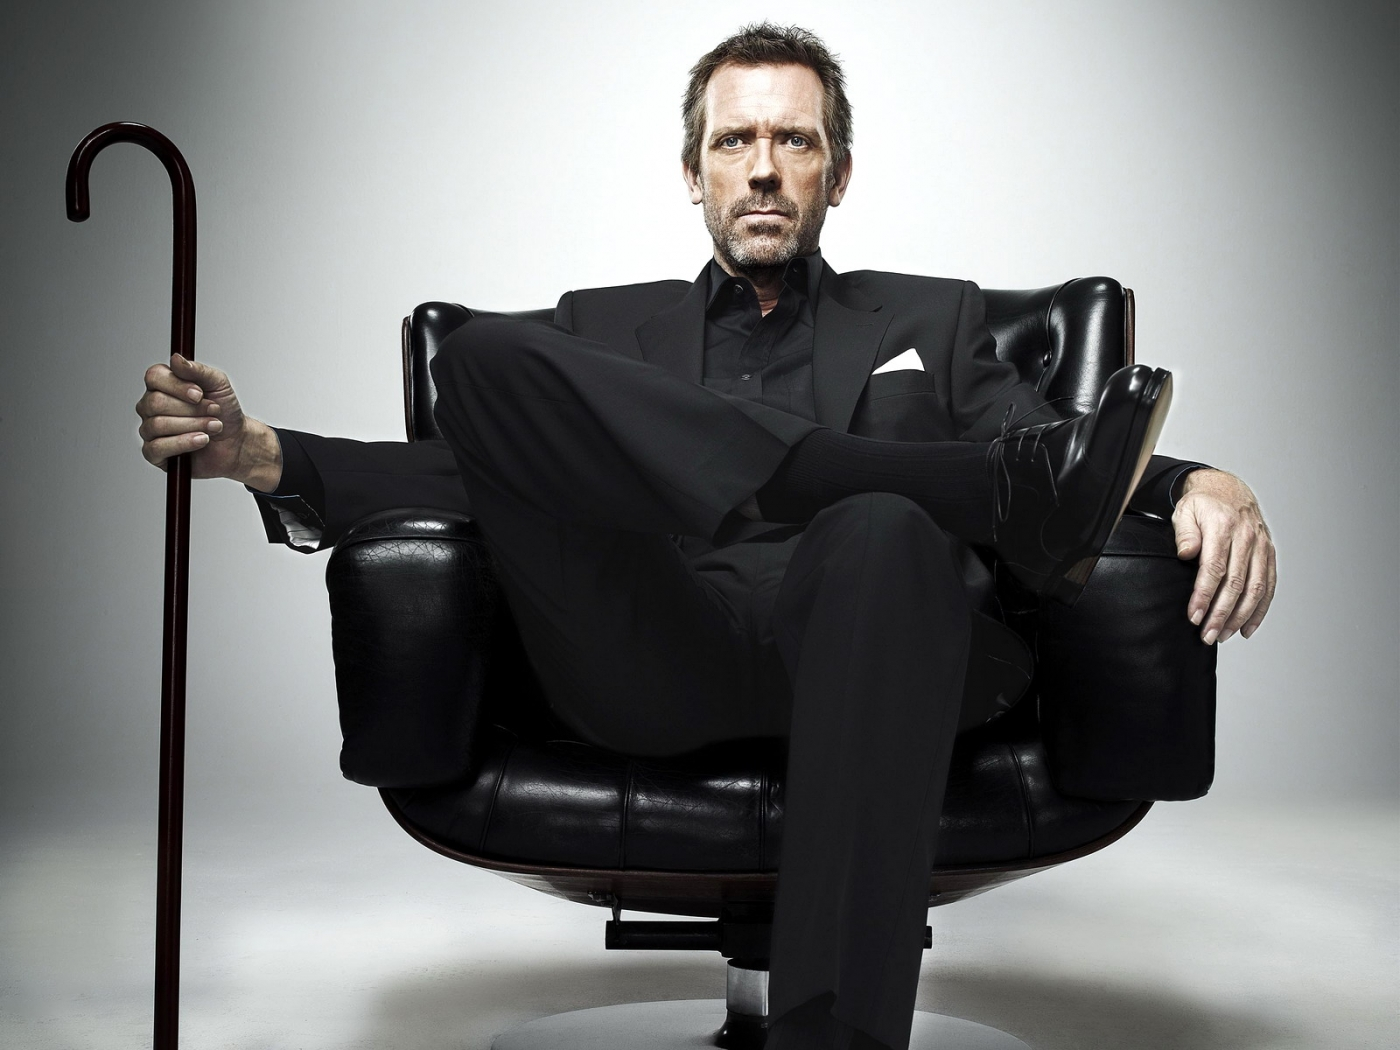 36536 download wallpaper Cinema, People, Actors, Men, House M.d., Hugh Laurie screensavers and pictures for free